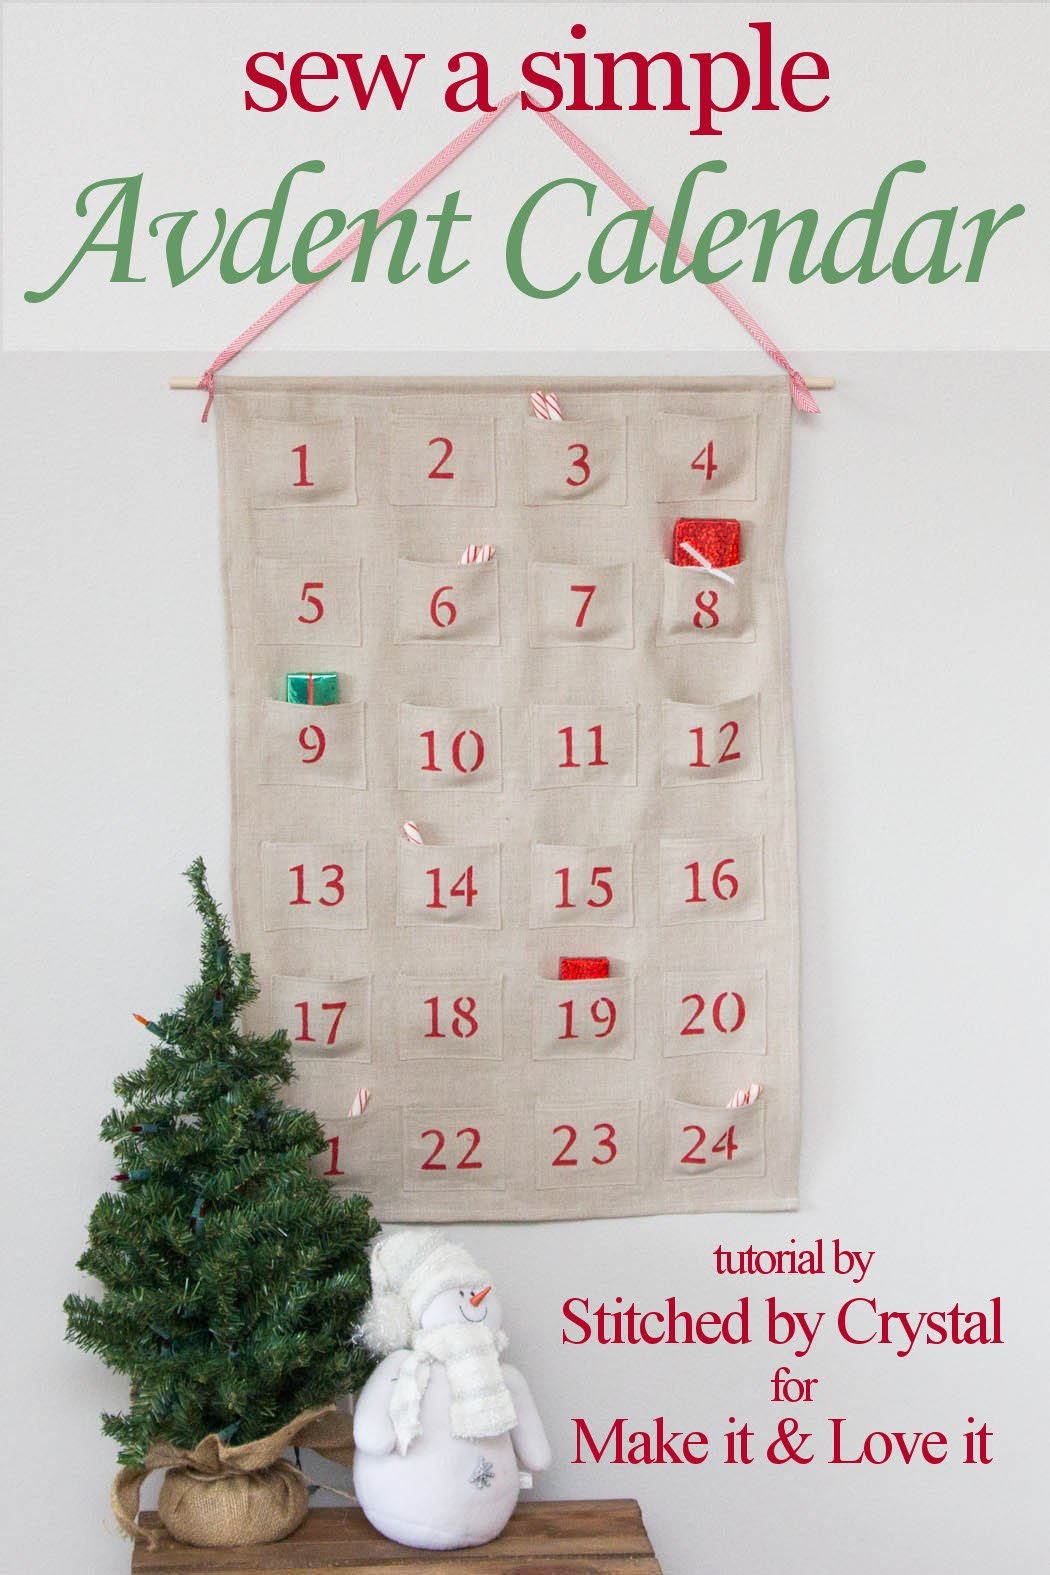 Diy Sewing Advent Calendar : Sew a simple advent calendar for christmas make it